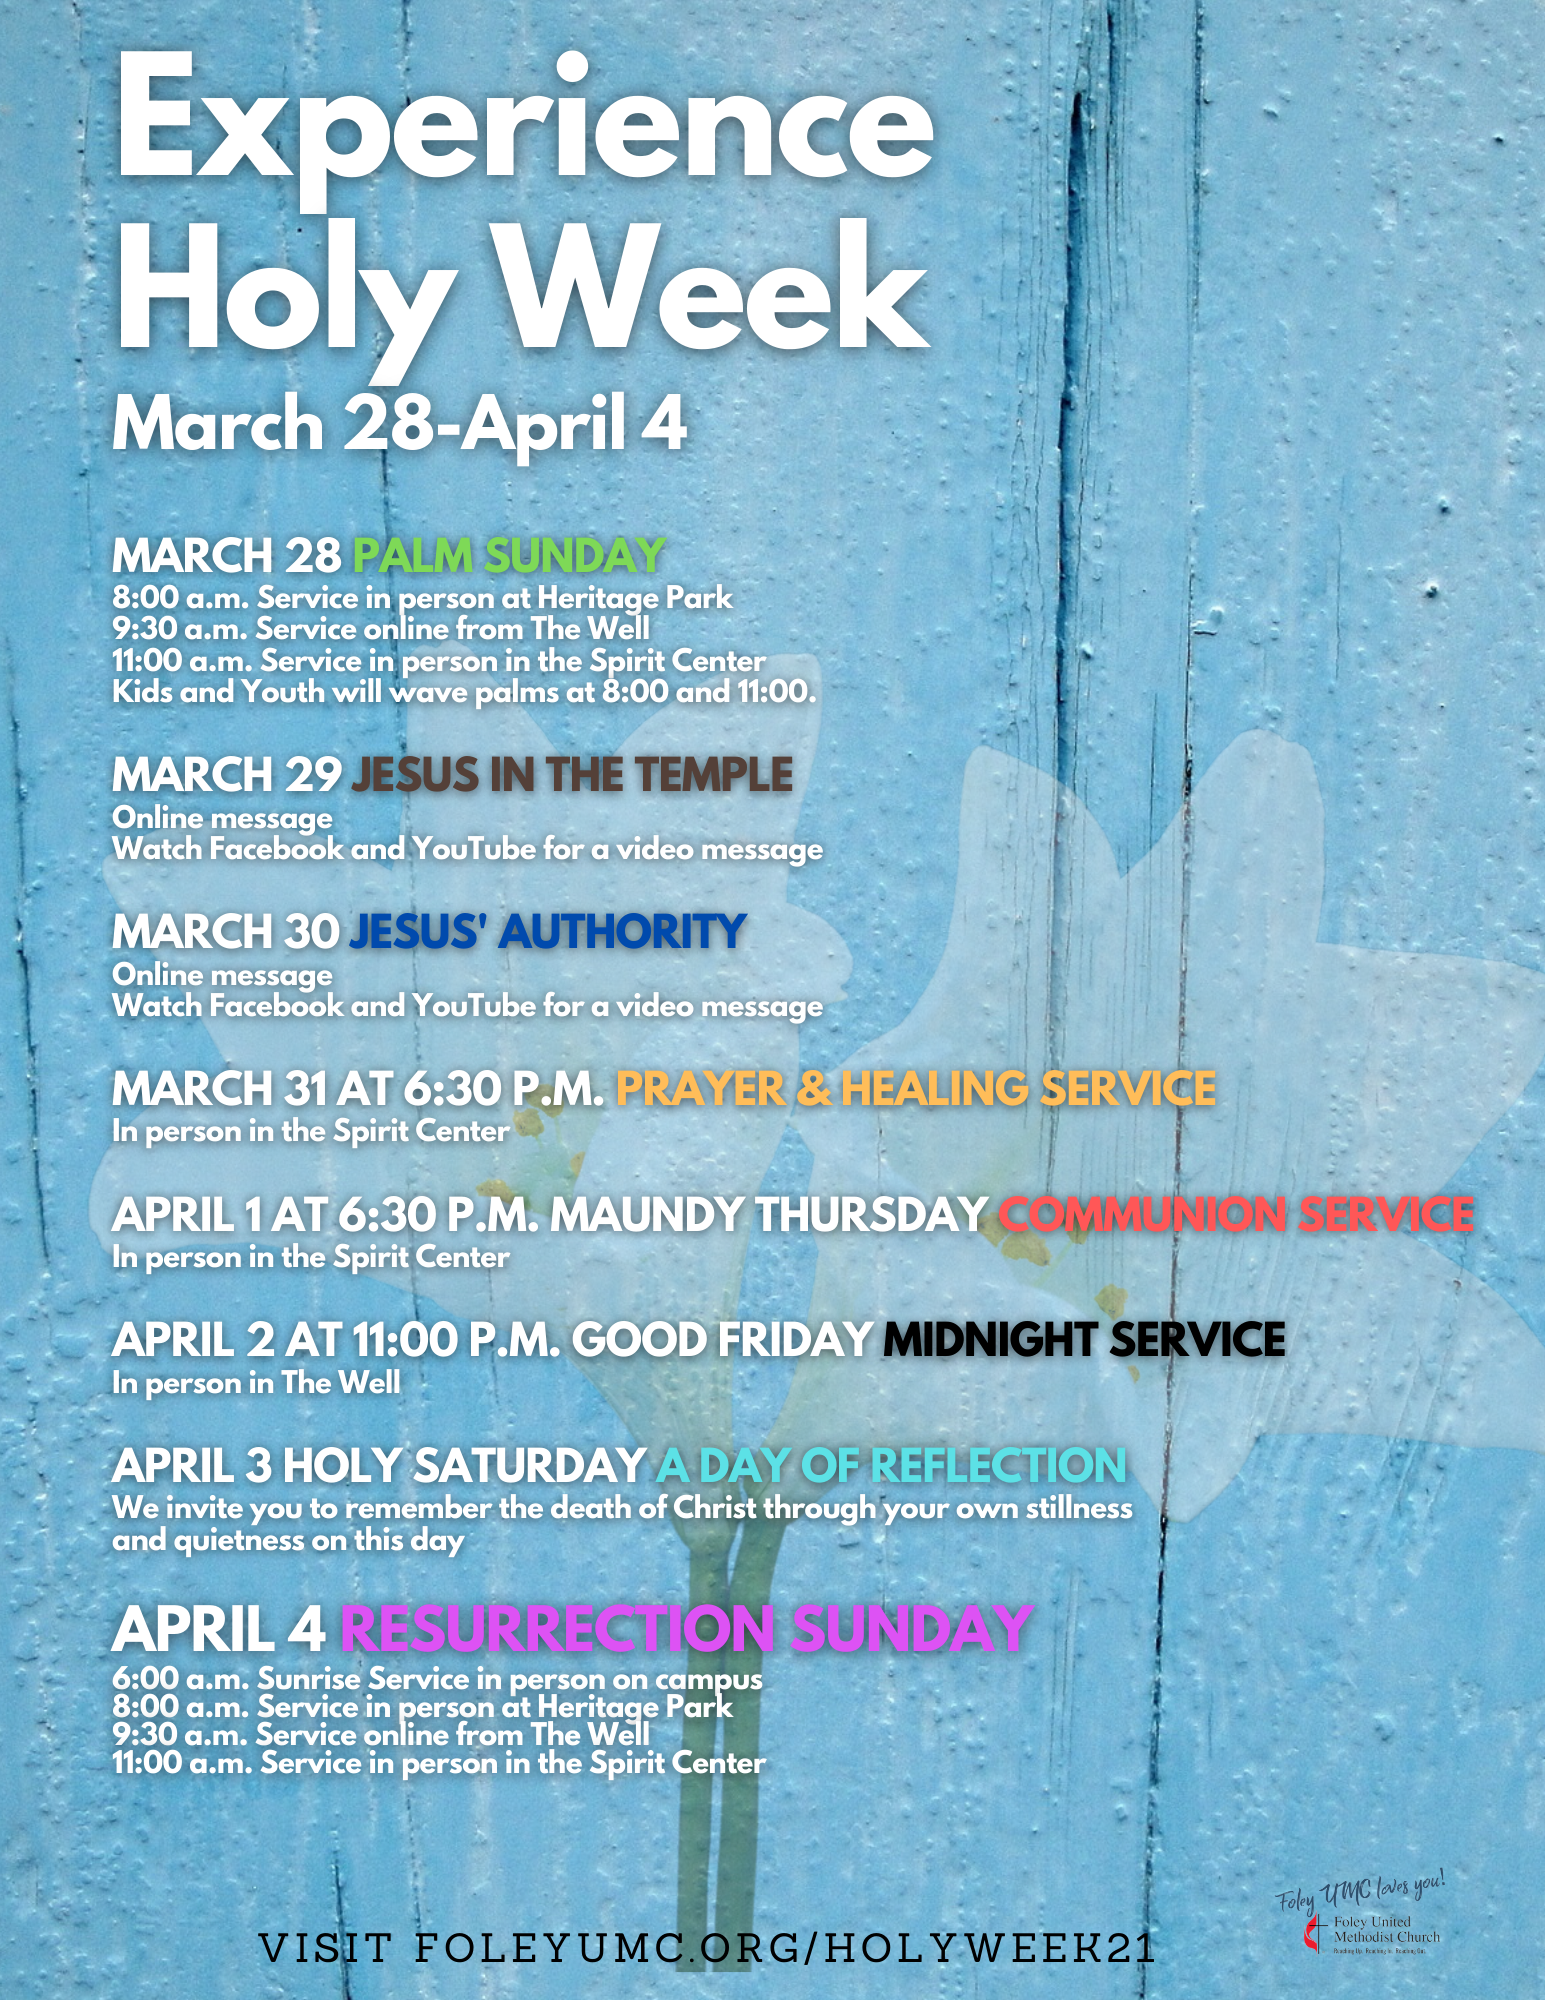 Holy Week '21 letter size